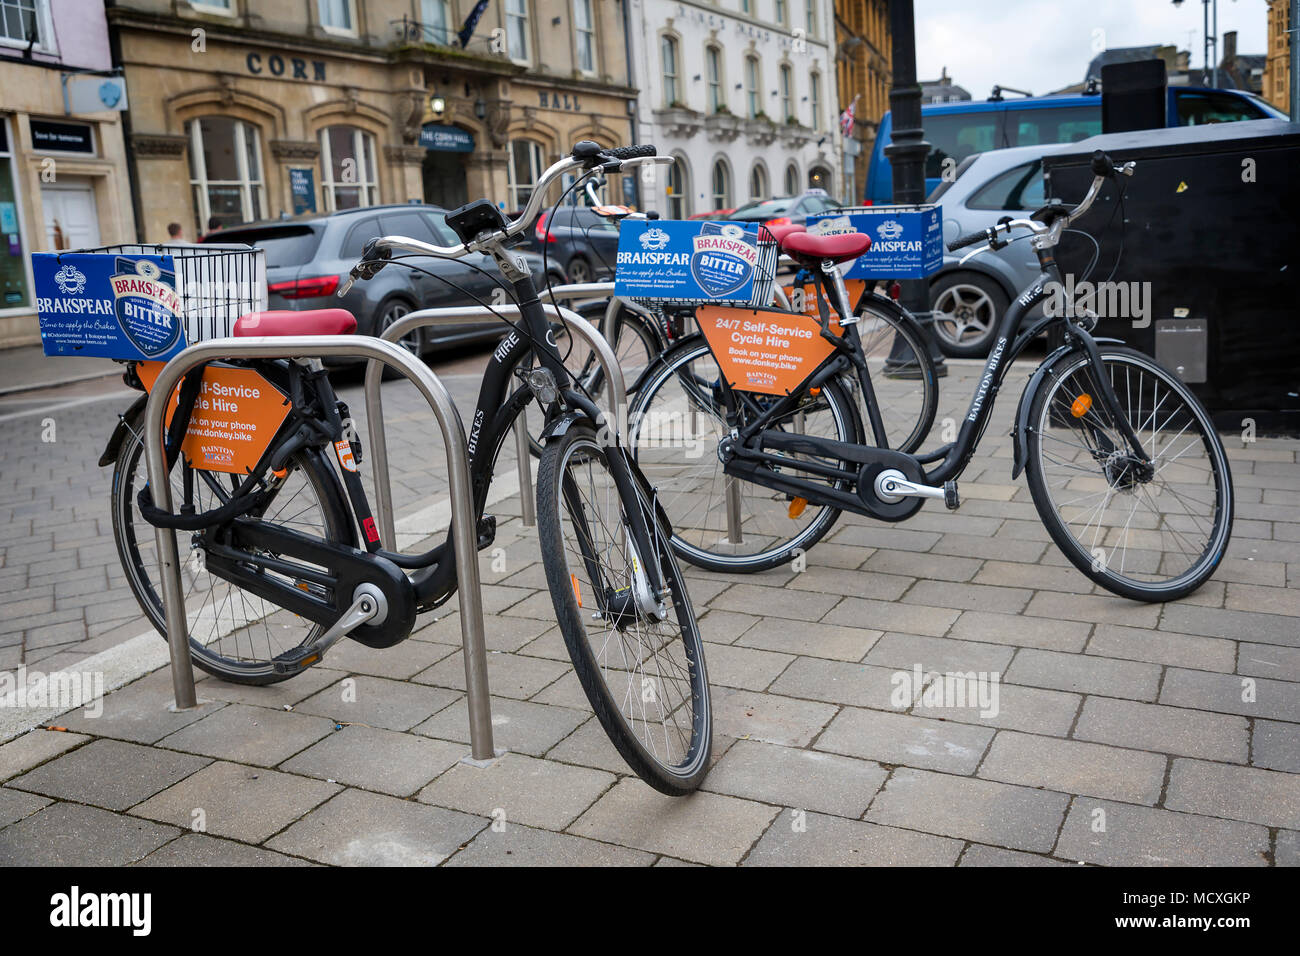 Donkey bikes chained to bike posts in Cirencester's town centre ready for hire on 07 April 2018 Stock Photo